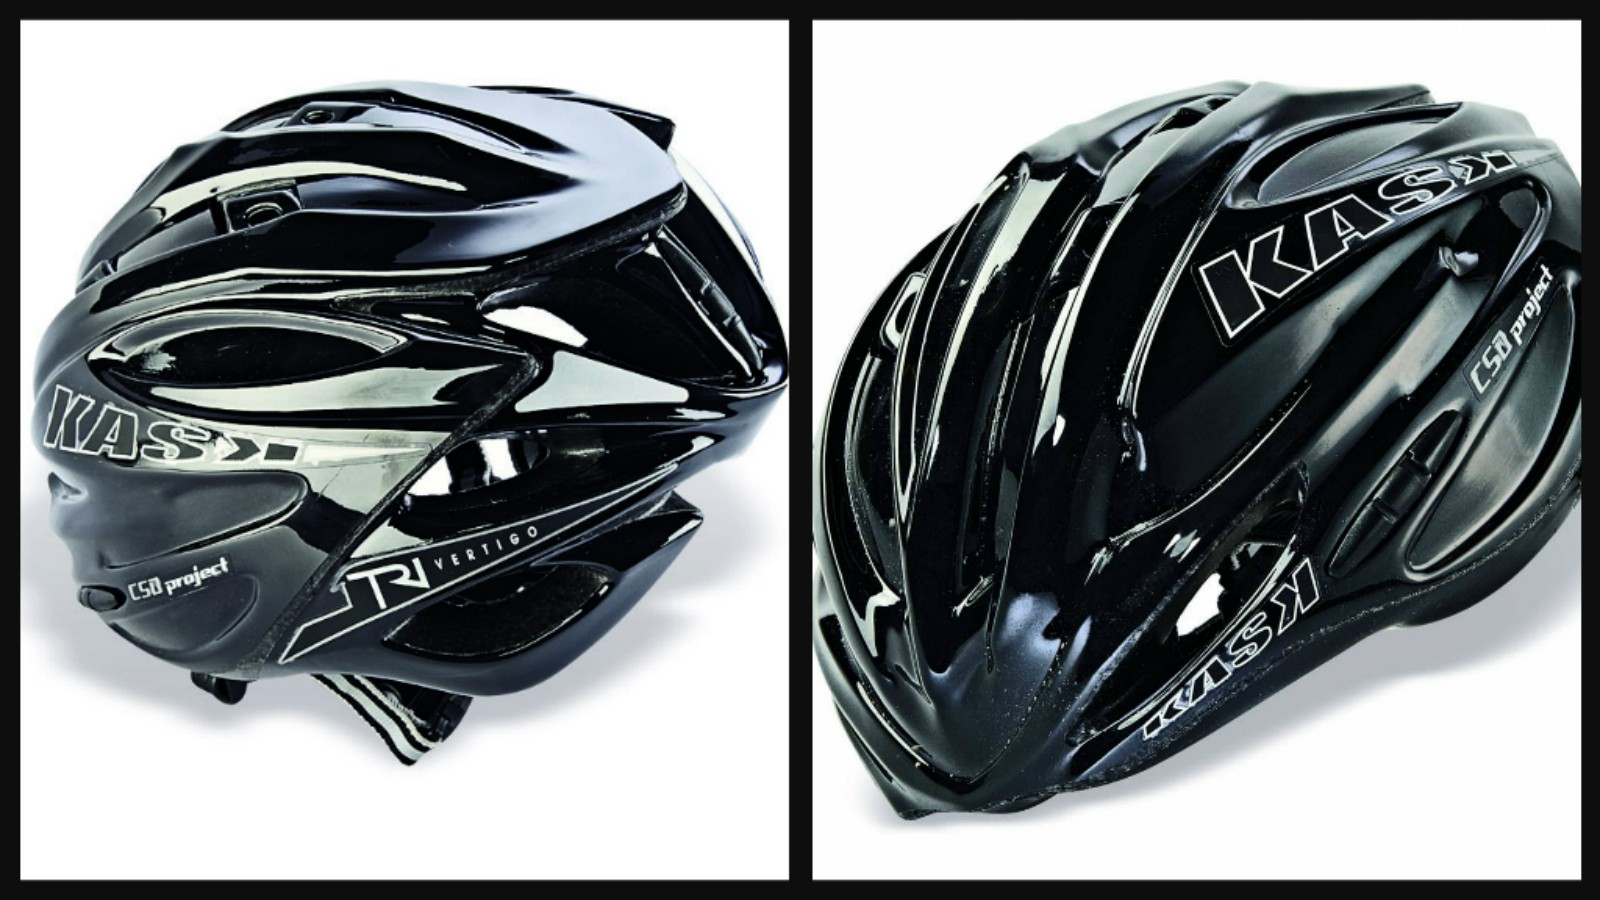 Kask is offering an amnesty on helmets